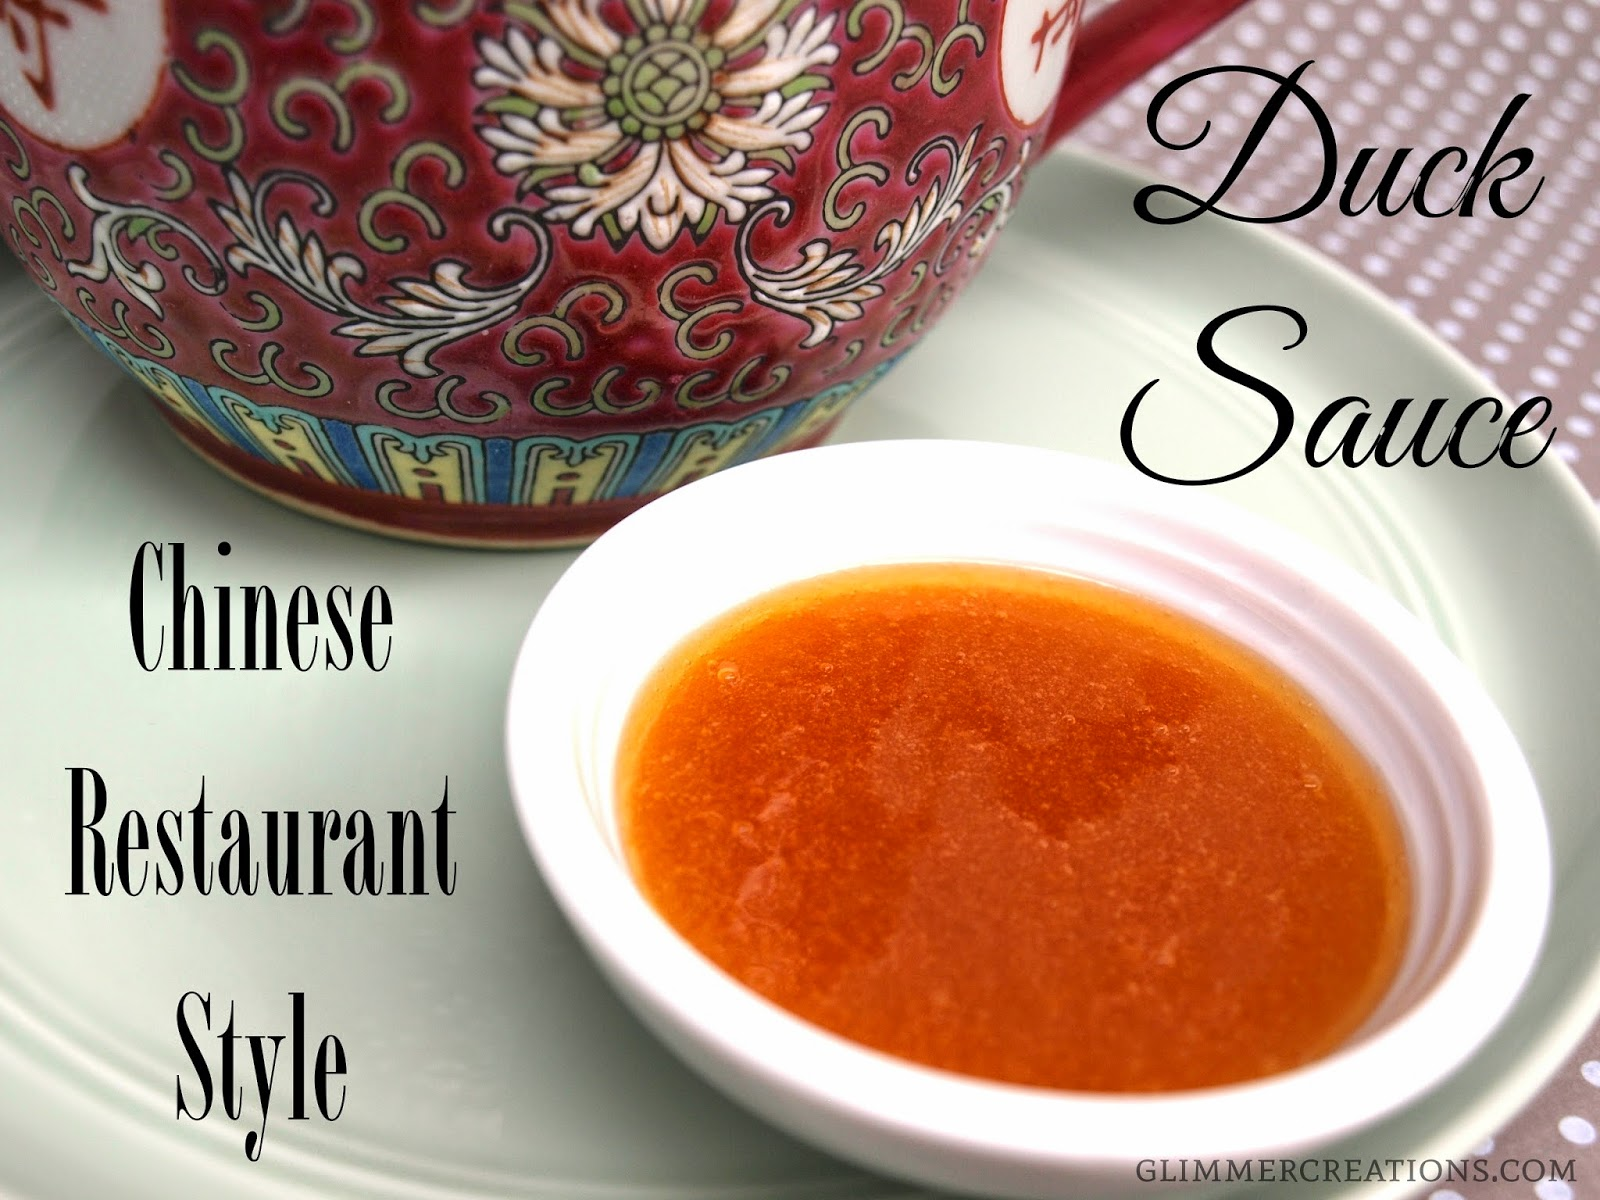 Glimmer creations chinese restaurant style duck sauce recipe the recipe forumfinder Image collections